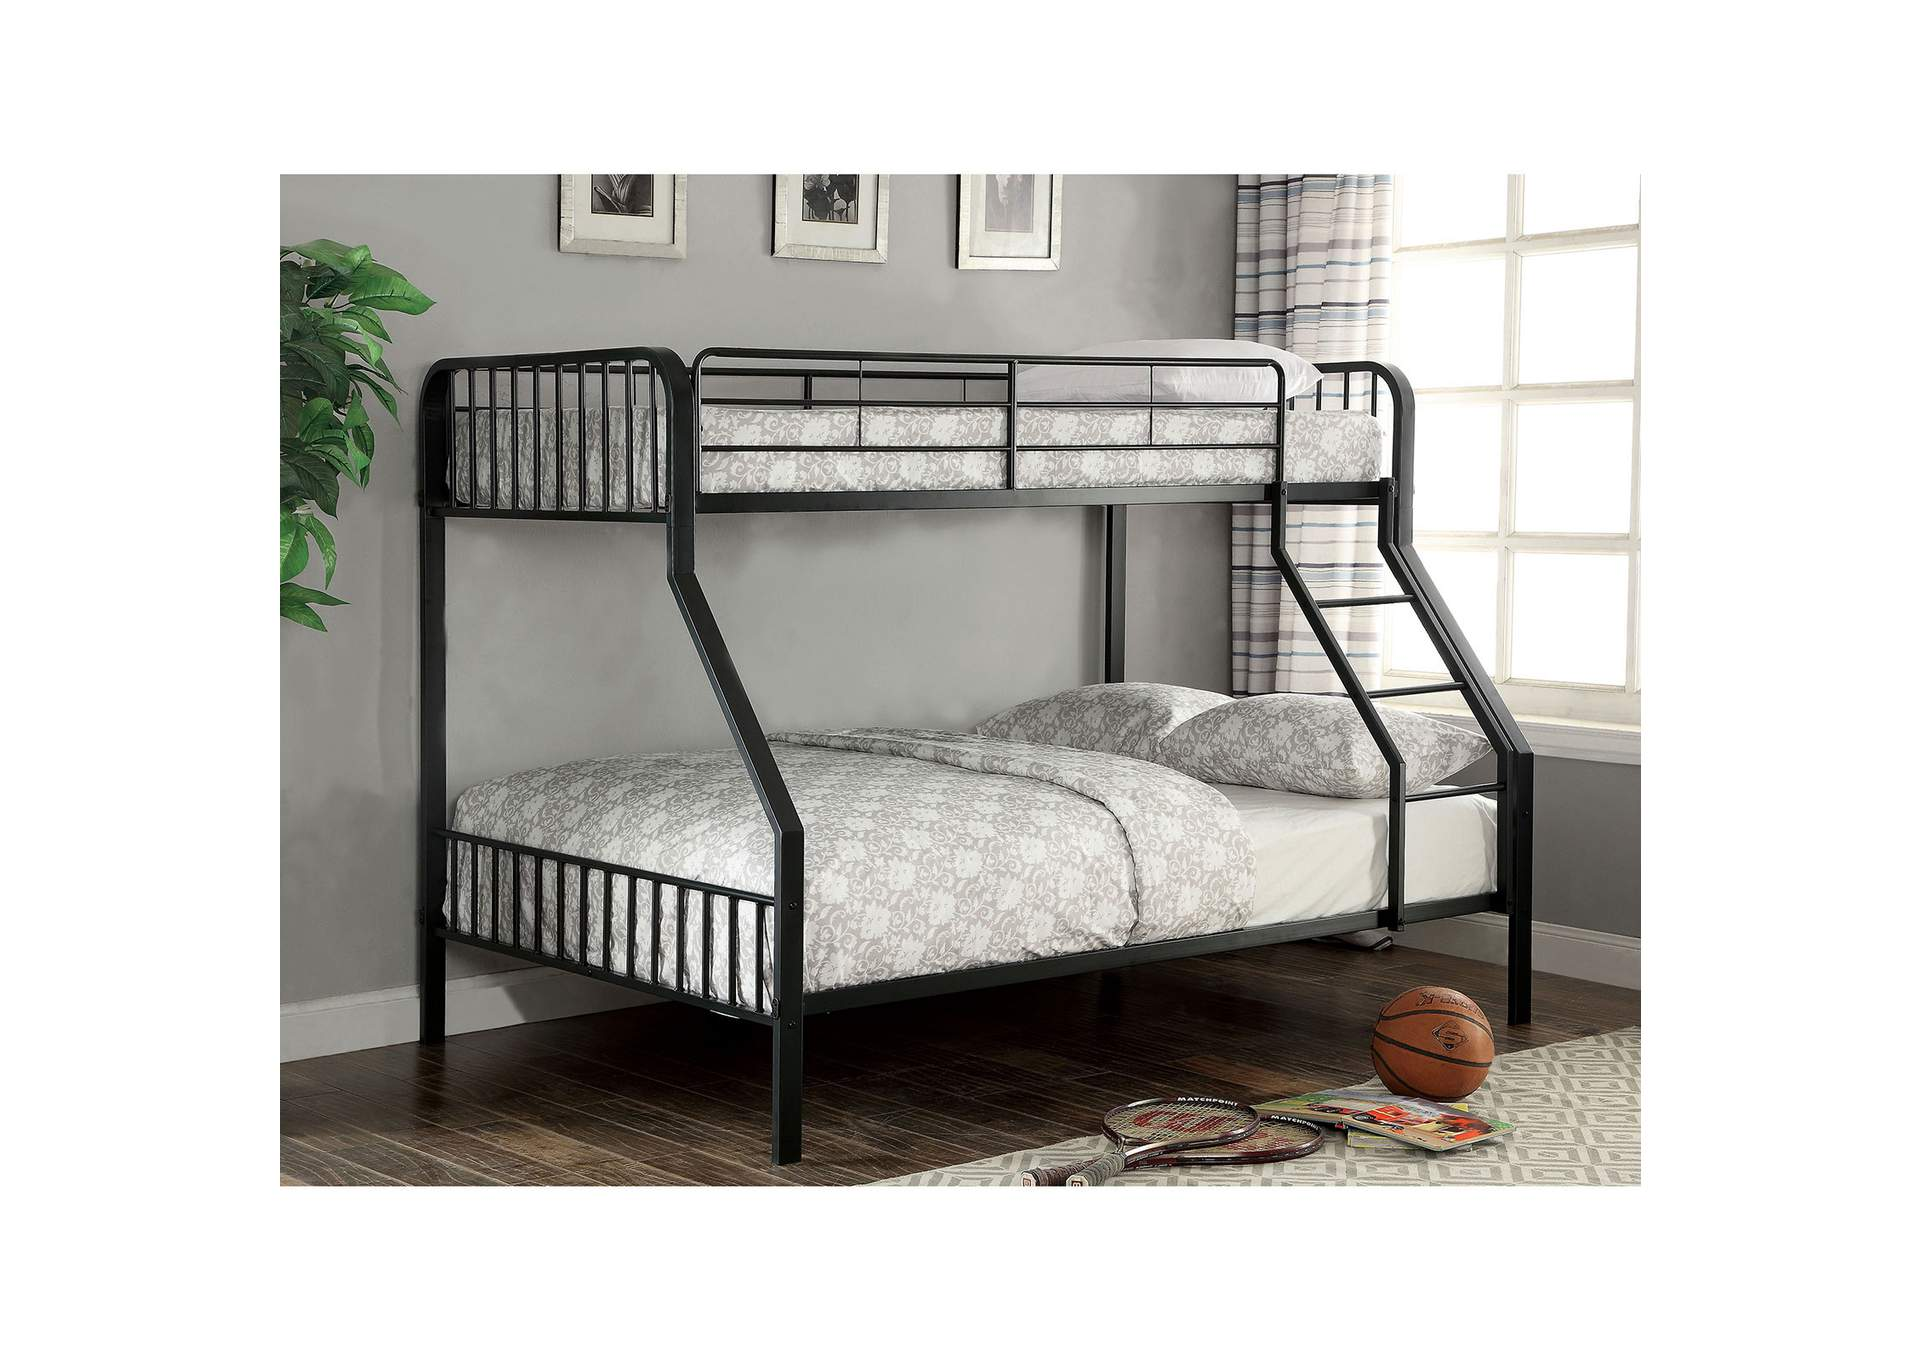 Clement Black Twin/Full Bunk Bed w/Ladder,Furniture of America